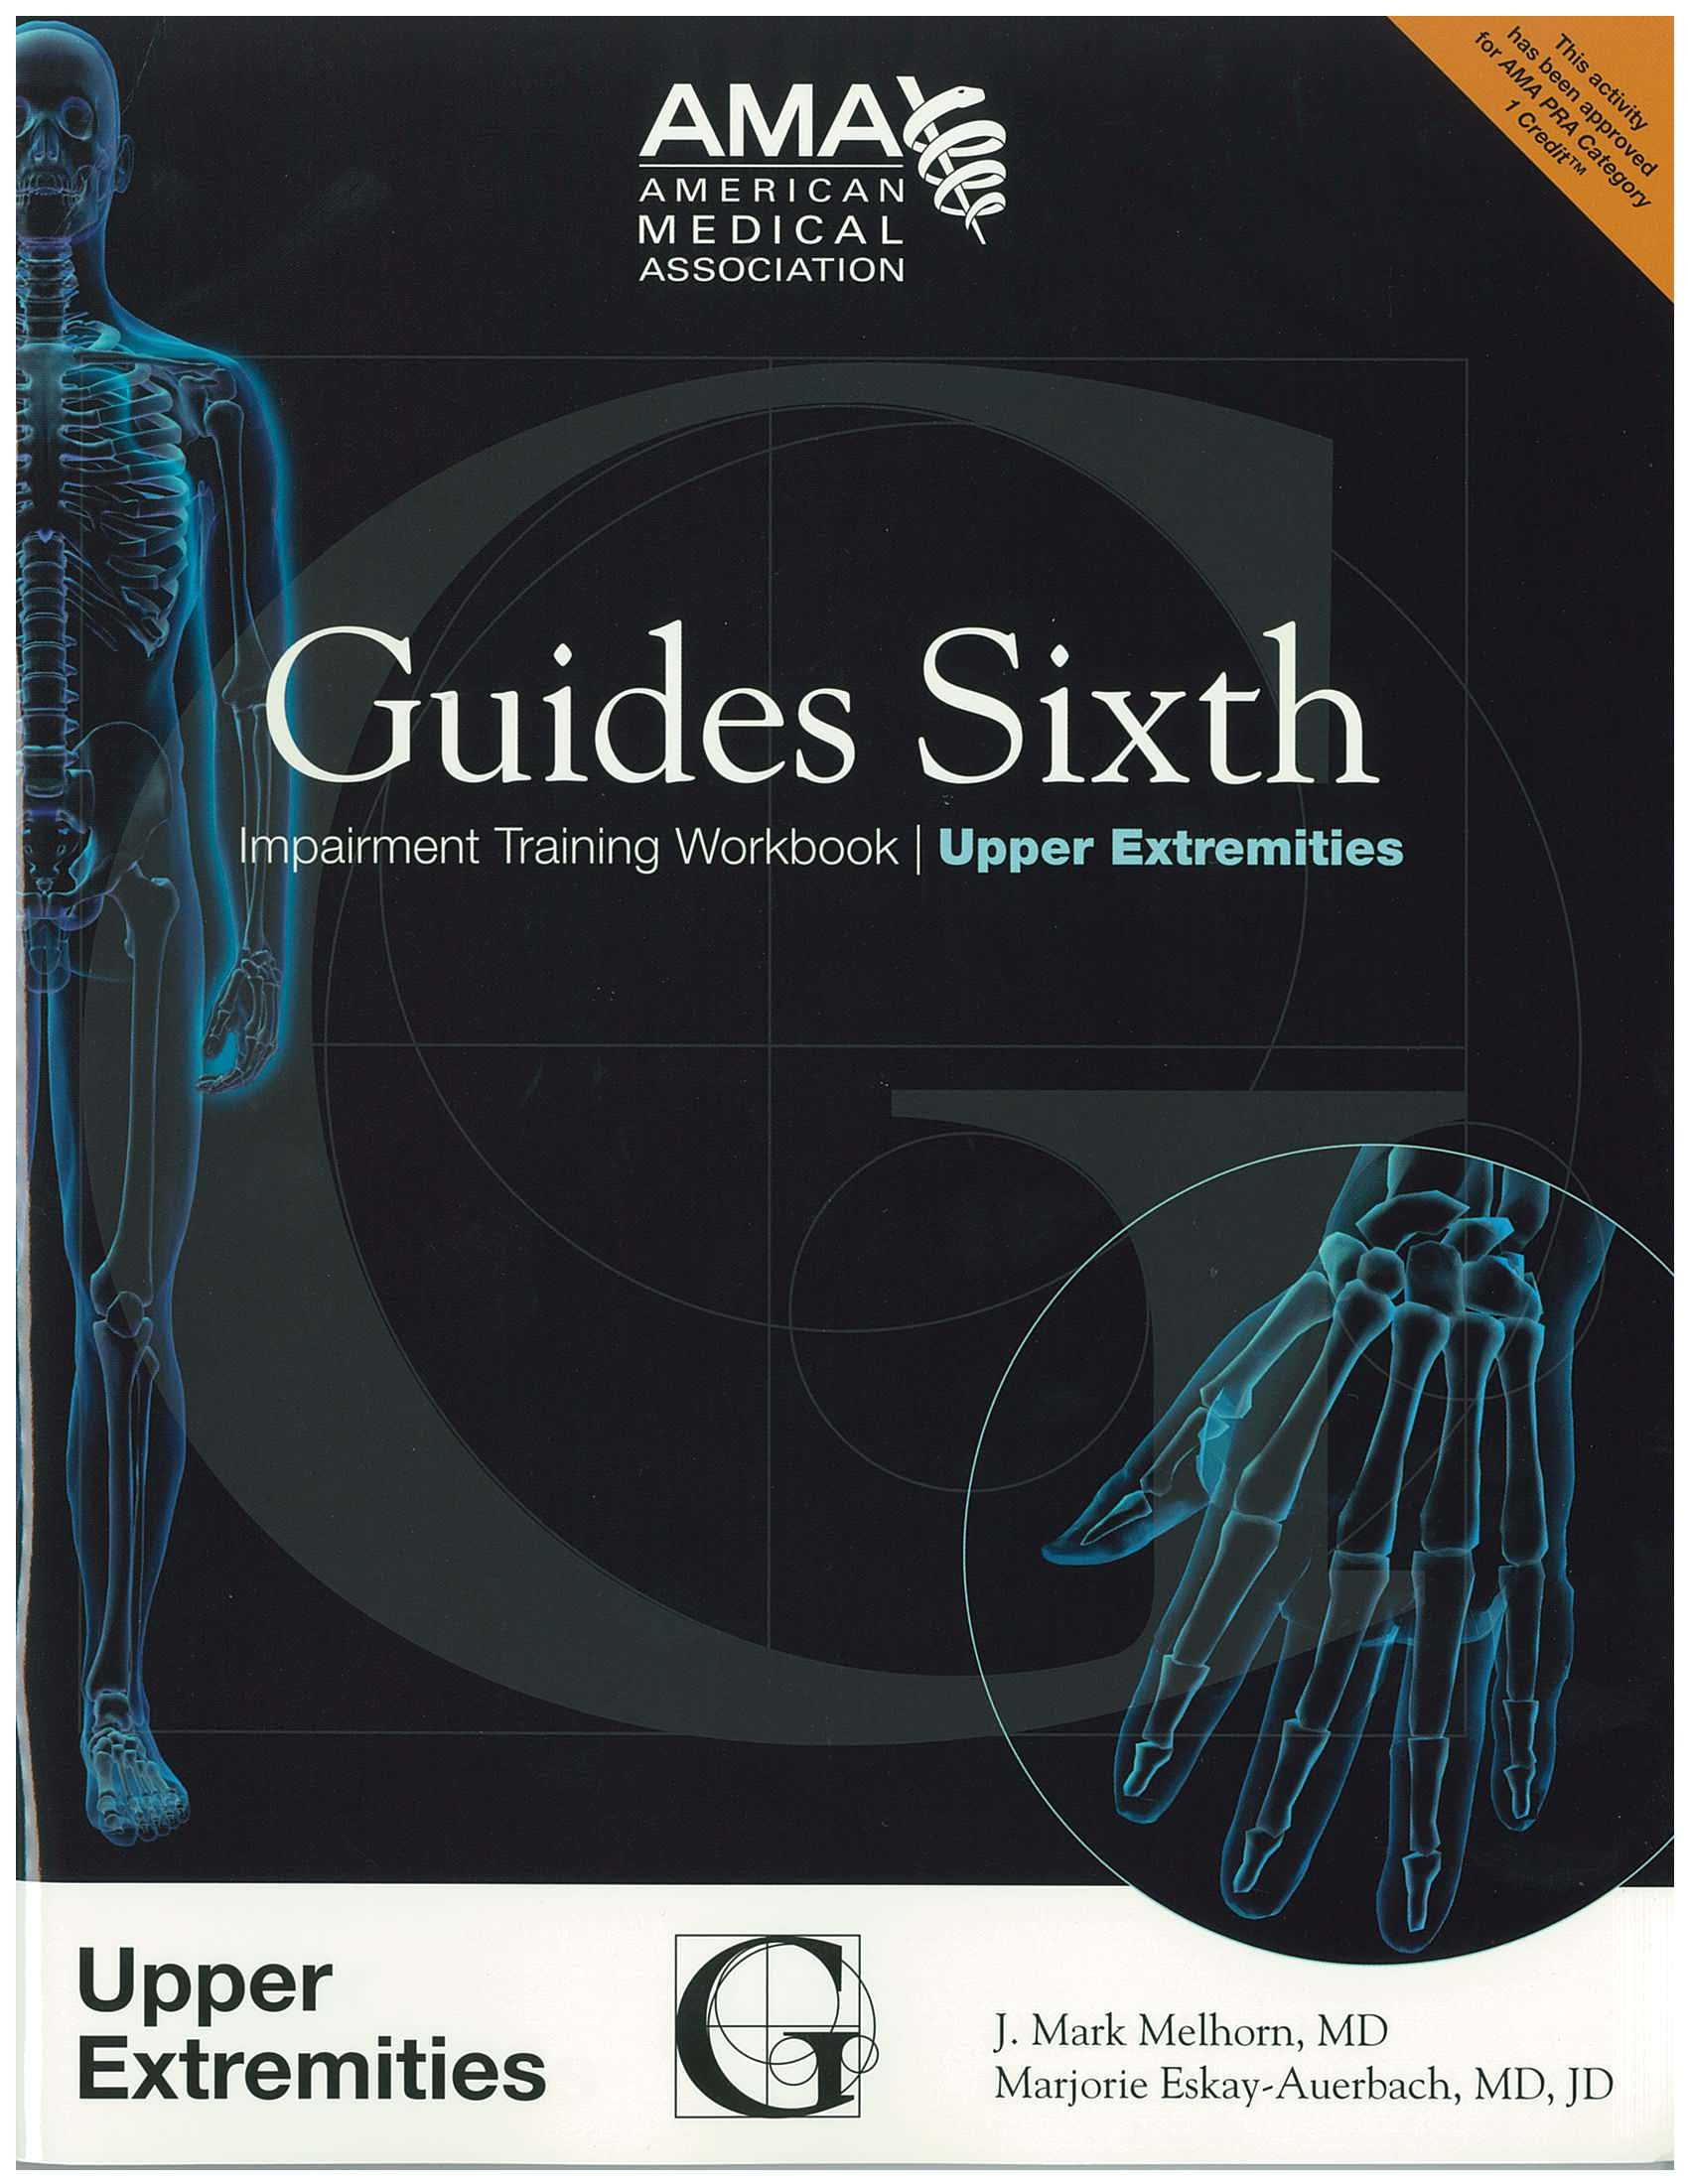 Guides Sixth Impairment Training Workbook: Upper Extremities - Featured Image